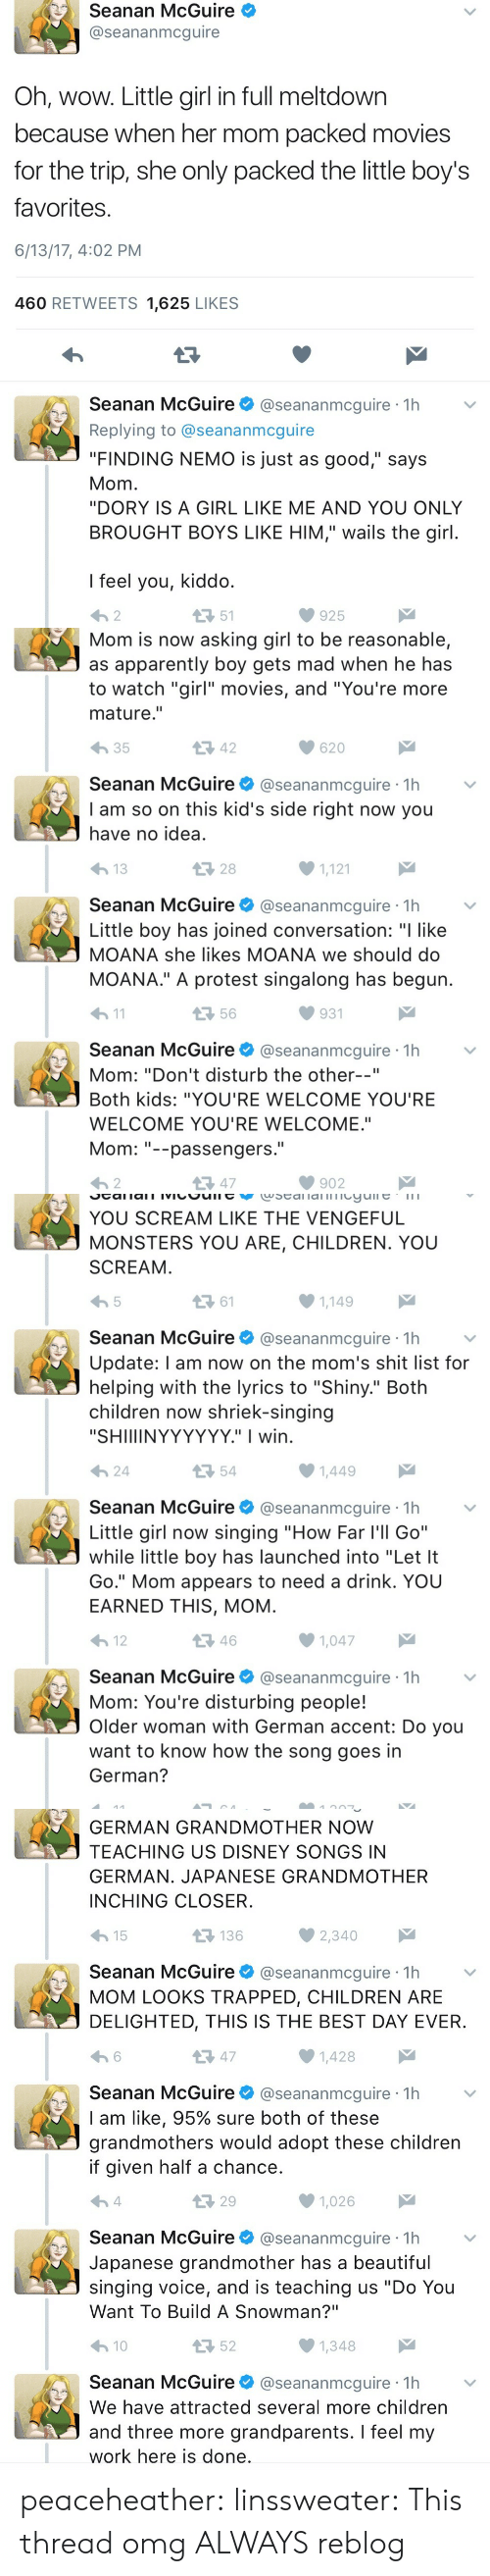 "disturbing: Seanan McGuire  @seananmcguire  Oh, wow. Little girl in full meltdown  because when her mom packed movies  for the trip, she only packed the little boy's  favorites  6/13/17, 4:02 PM  460 RETWEETS 1,625 LIKES  Seanan McGuire@seananmcguire 1h  Replying to @seananmcguire  ""FINDING NEMO is just as good,"" says  Mom  ""DORY IS A GIRL LIKE ME AND YOU ONLY  BROUGHT BOYS LIKE HIM,"" wails the girl  I feel you, kiddo  わ2  51  925   Mom is now asking girl to be reasonable,  as apparently boy gets mad when he has  to watch ""girl"" movies, and ""You're more  mature.""  わ35  42  620  Seanan McGuire@seananmcguire 1h  I am so on this kid's side right now you  have no idea  28  1,121  Seanan McGuire@seananmcguire 1h  Little boy has joined conversation: ""I like  MOANA she likes MOANA we should do  MOANA."" A protest singalong has begun  h1  56  931  Seanan McGuire@seananmcguire 1h  Mom: ""Don't disturb the other--""  Both kids: ""YOU'RE WELCOME YOU'RE  WELCOME YOU'RE WELCOME.""  Mom--passengers.  わ2  다 47  902   YOU SCREAM LIKE THE VENGEFUL  MONSTERS YOU ARE, CHILDREN. YOU  SCREAM  ロ61  1,149  Seanan McGuire@seananmcguire 1h  Update: l am now on the mom's shit list for  helping with the lyrics to ""Shiny."" Both  children now shriek-singing  ""SHIIIINYYYYYY."" I wirn  24  54  Seanan McGuireネ@seananmcgure·1h  Little girl now singing ""How Far l'll Go""  while little boy has launched into ""Let It  Go."" Mom appears to need a drink. YOU  EARNED THIS, MOM  12  46  1,047  Seanan McGuire@seananmcguire 1h  Mom: You're disturbing people!  Older woman with German accent: Do you  want to know how the song goes in  German?   GERMAN GRANDMOTHER NOW  TEACHING US DISNEY SONGS IN  GERMAN. JAPANESE GRANDMOTHER  INCHING CLOSER  15  136  Seanan McGuire@seananmcguire 1h  MOM LOOKS TRAPPED, CHILDREN ARE  DELIGHTED, THIS IS THE BEST DAY EVER  13 47  1,428  Seanan McGuire@seananmcguire 1h  I am like, 95% sure both of these  grandmothers would adopt these children  if given half a chance  29  1,026  Seanan McGuire @seananmcguire·1h  Japanese grandmother has a beautiful  singing voice, and is teaching us ""Do You  Want To Build A Snowman?""  10  52  Seanan McGuire@seananmcguire 1h  We have attracted several more children  and three more grandparents. I feel my  work here is done peaceheather:  linssweater: This thread omg ALWAYS reblog"